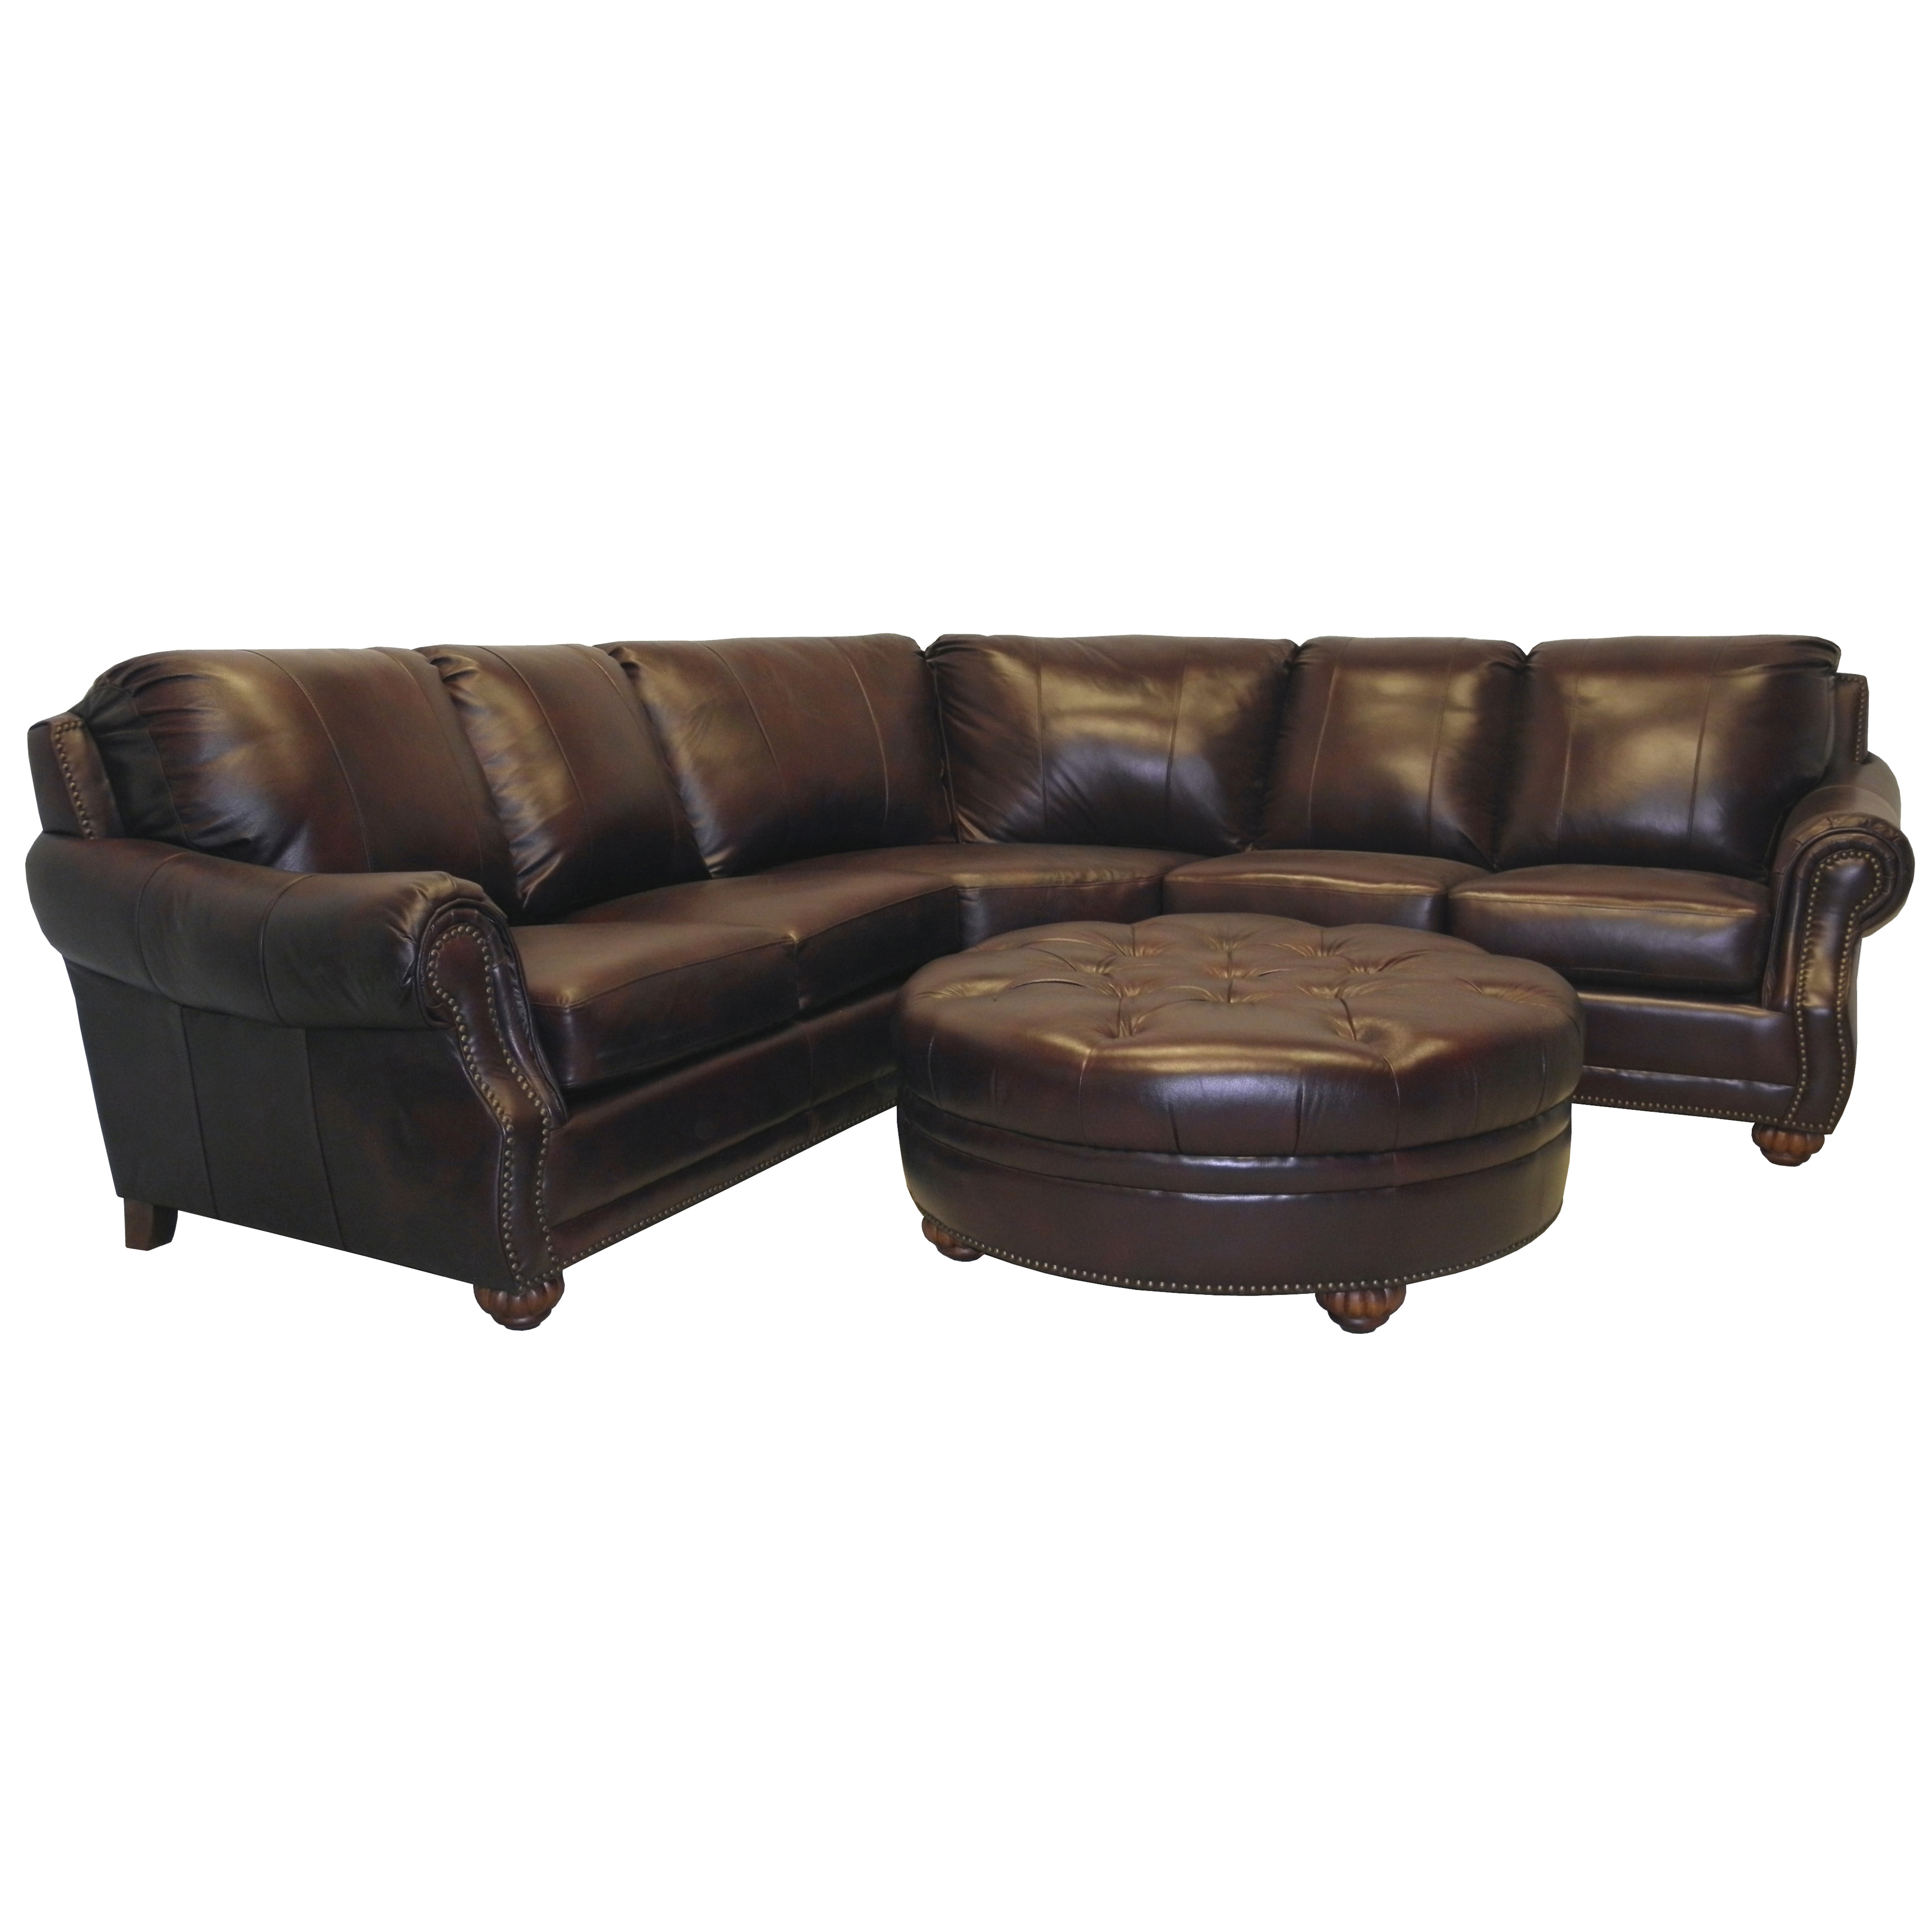 black leather Sectional Couches plus round leather stool for inspiring furniture ideas